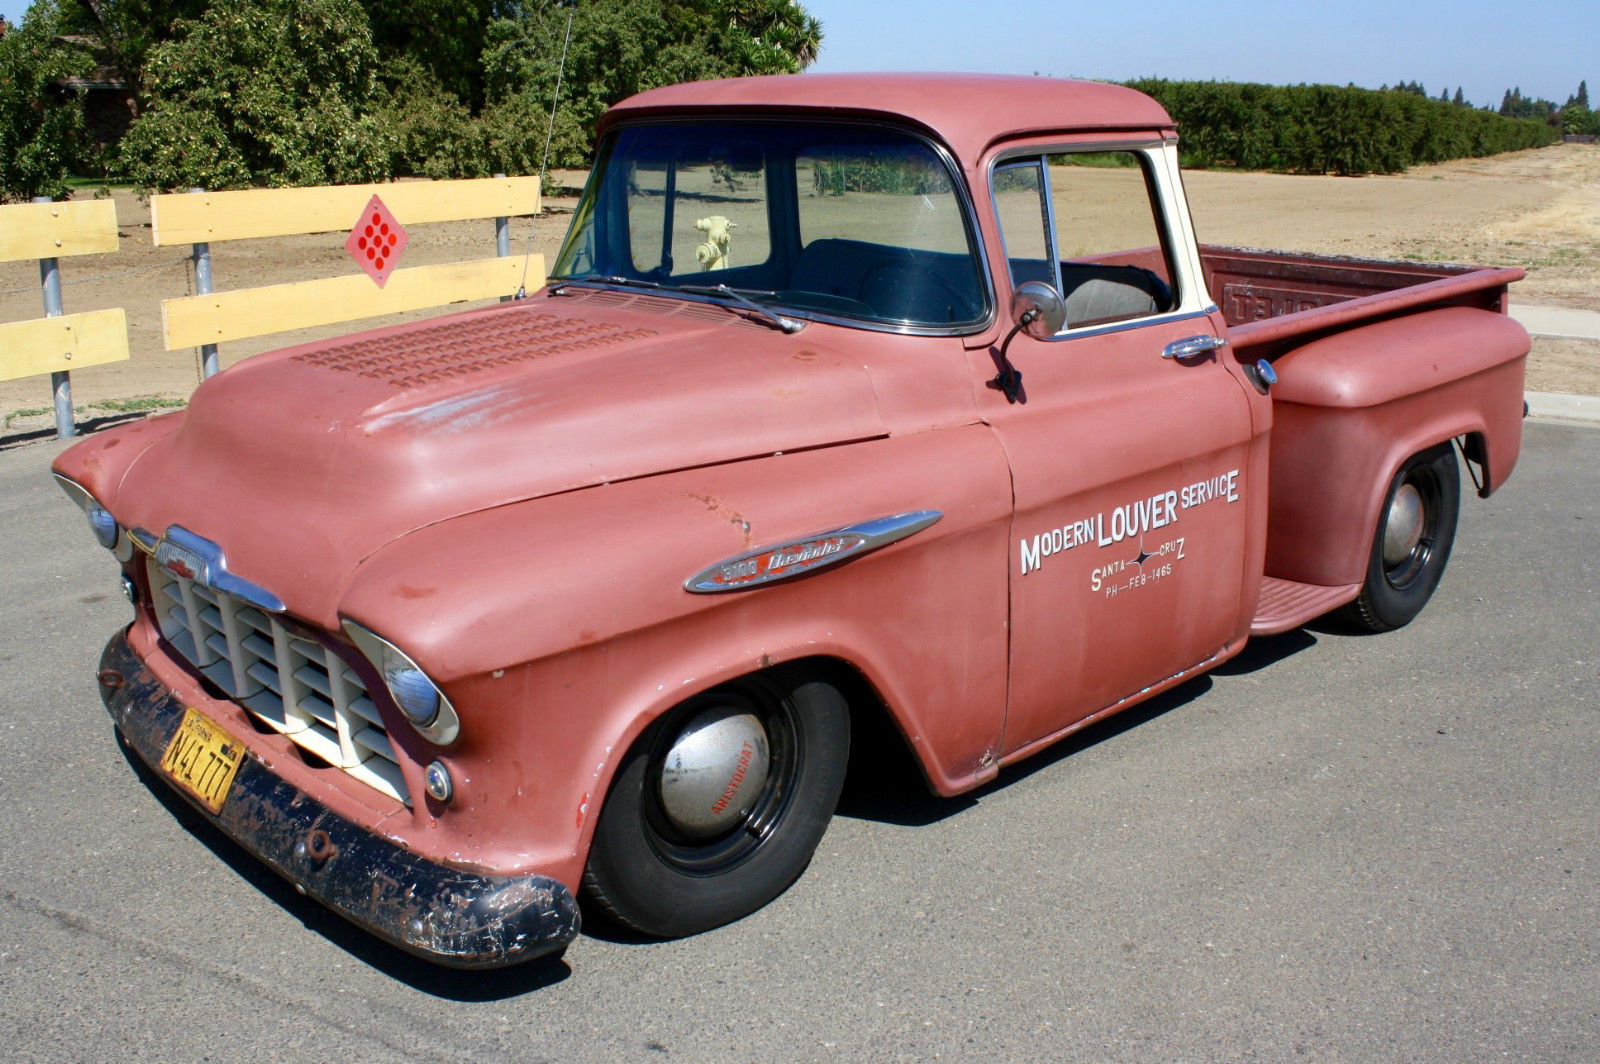 1957 Chevrolet Big Window V8 Pickup, California Truck, Hot ...